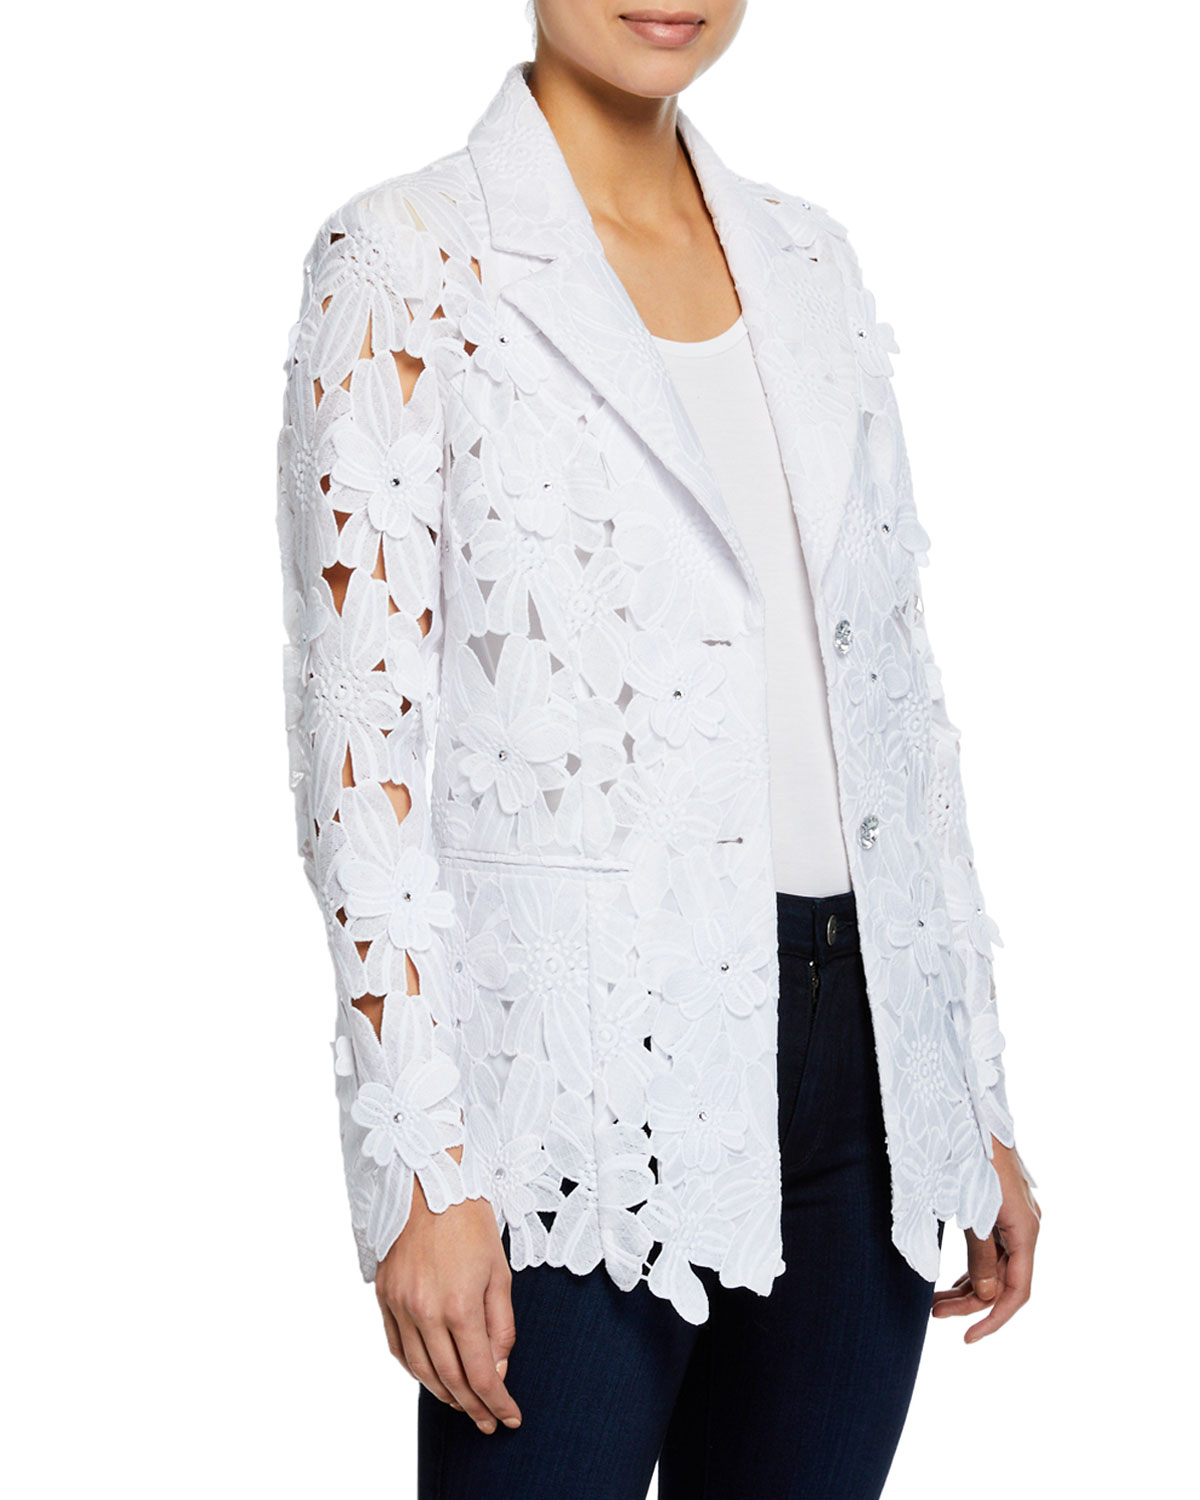 ae4790cb18e6 Berek Plus Size Peek-A-Boo 3D Open Floral Lace Button-Front Jacket ...